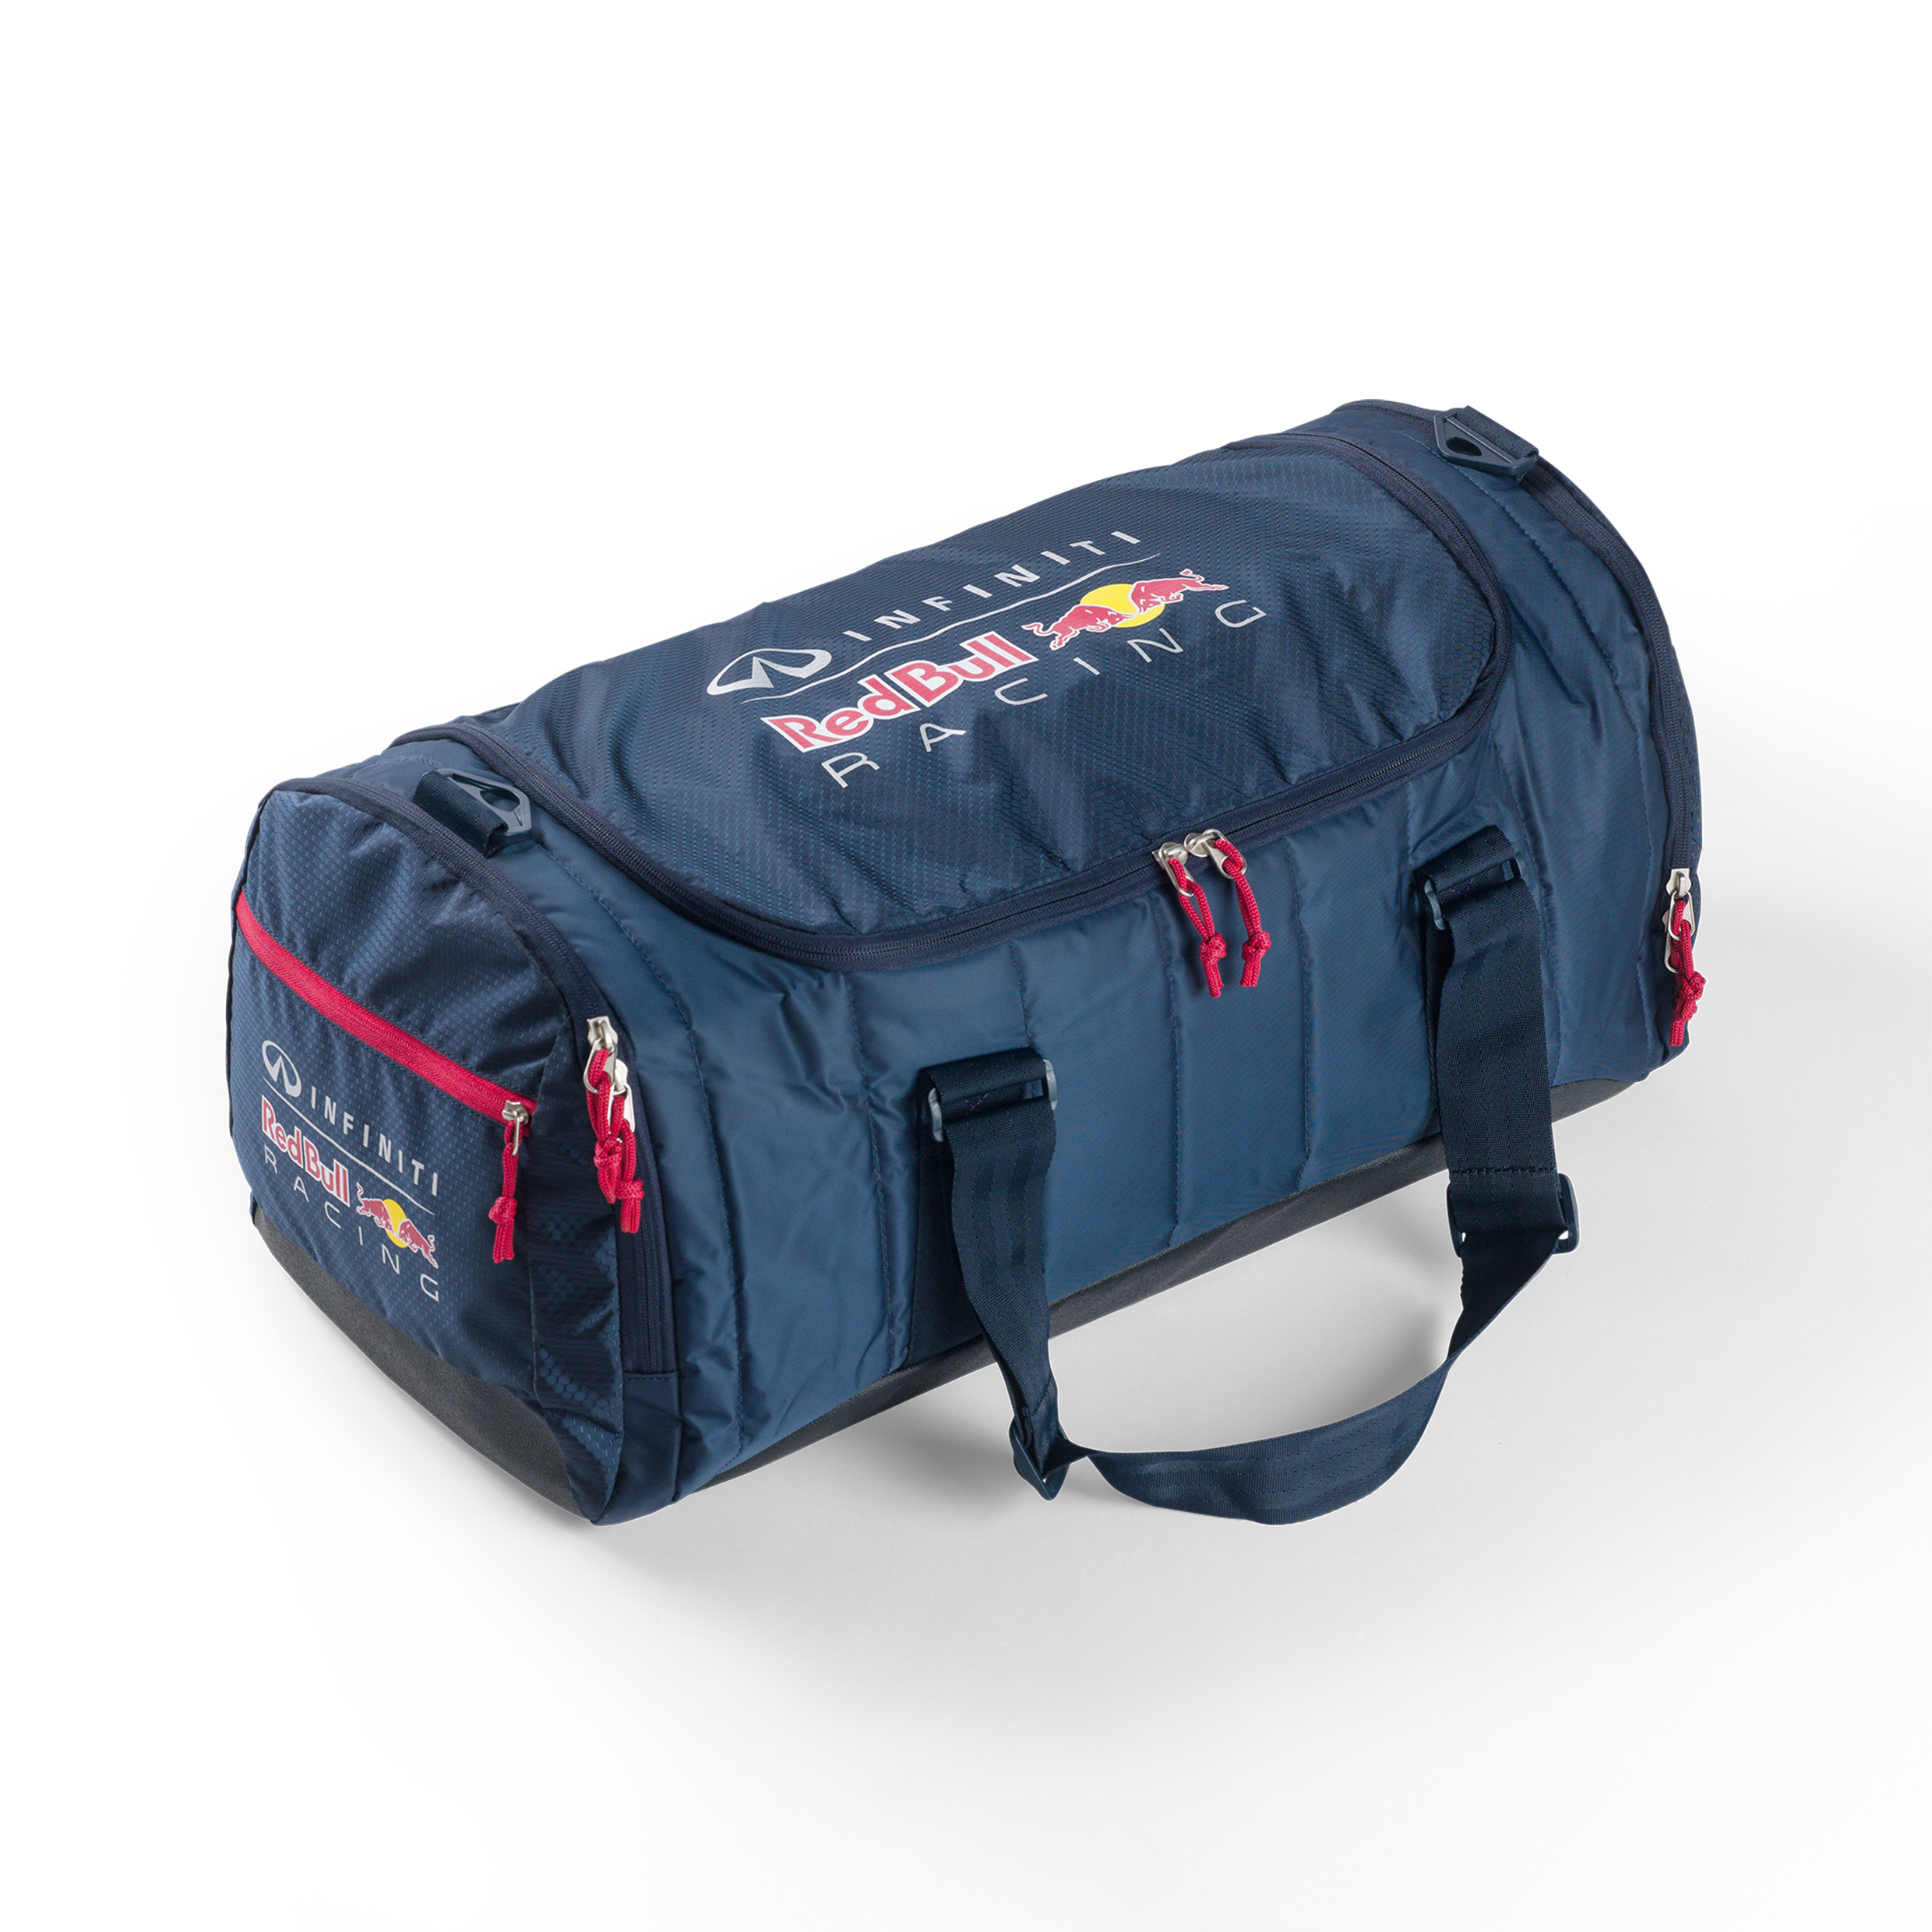 Infiniti Red Bull Racing Sports Bag